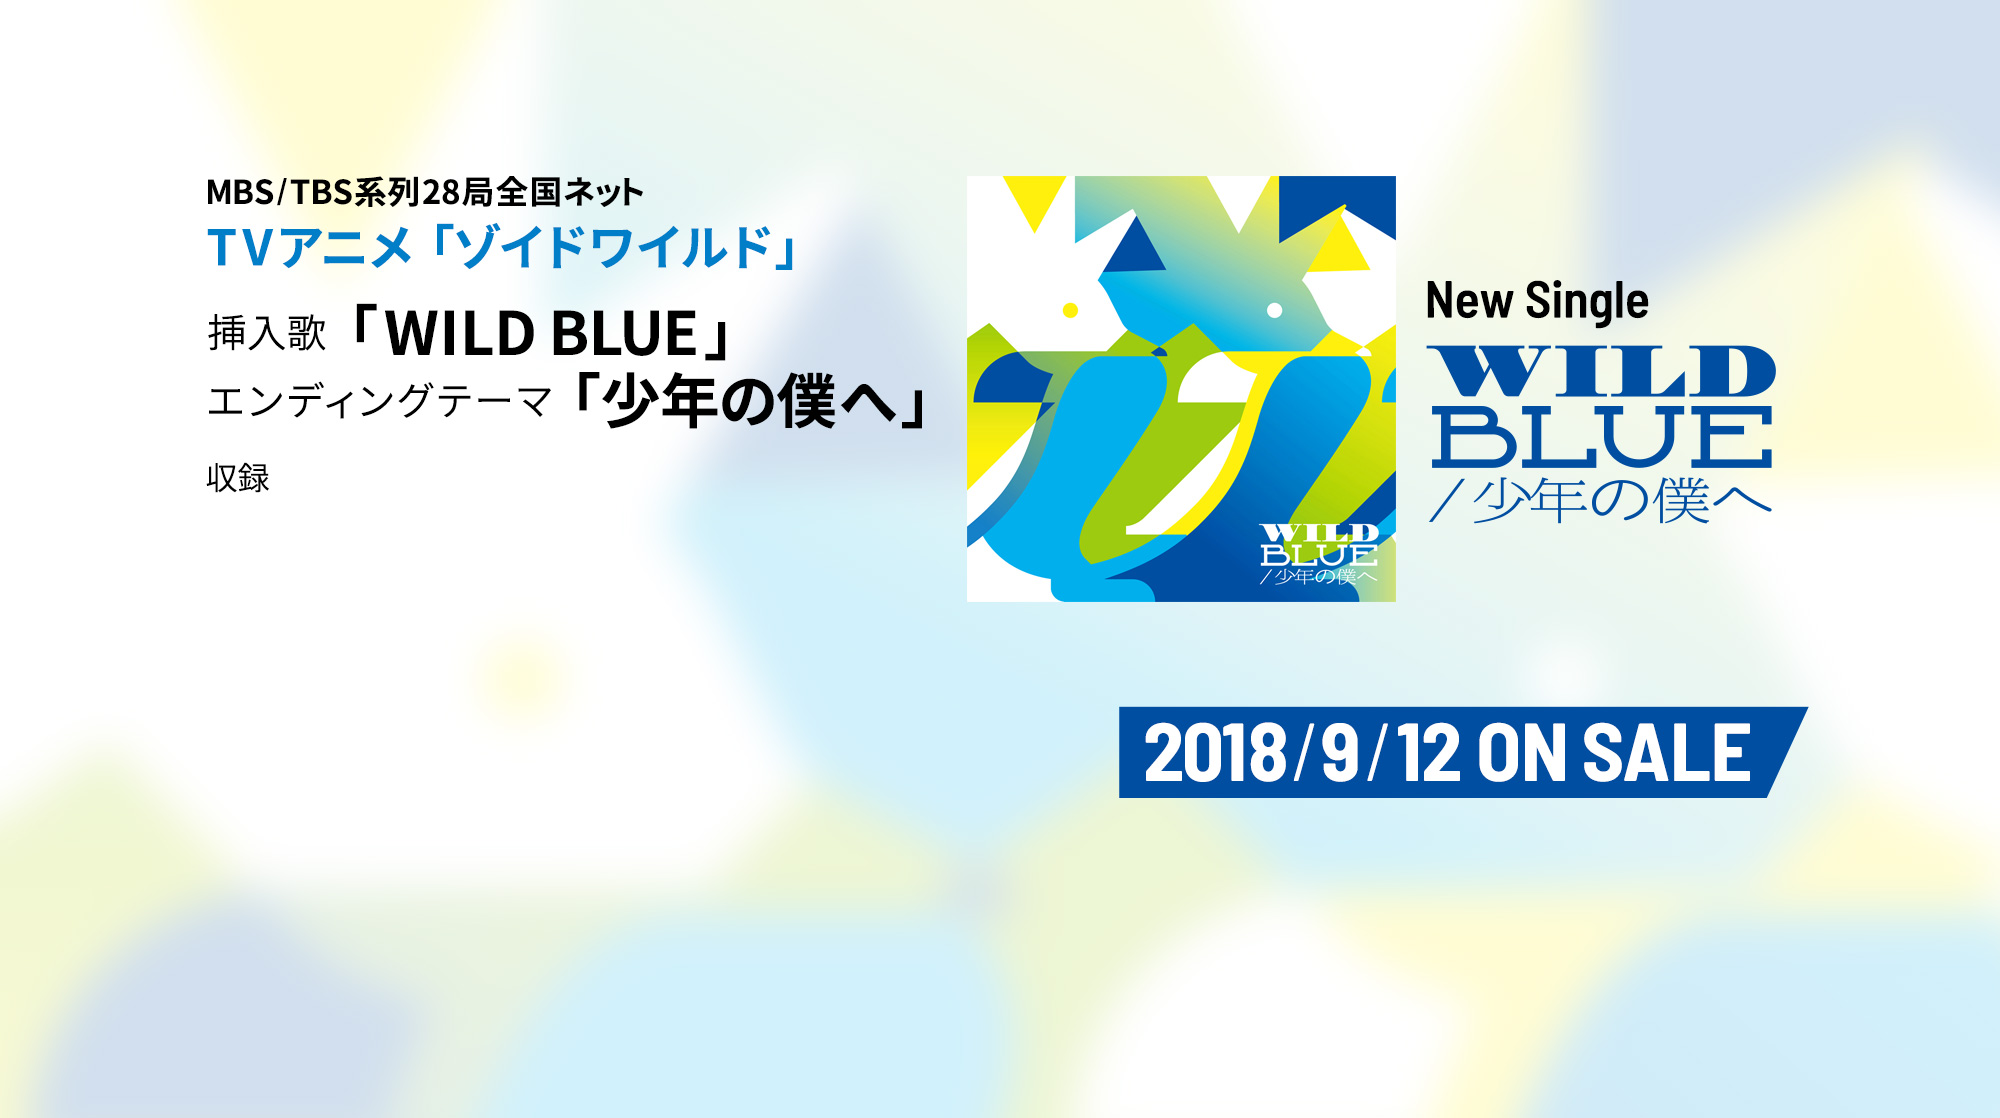 New Single『WILD BLUE / 少年の僕へ』2018/9/12 ON SALE